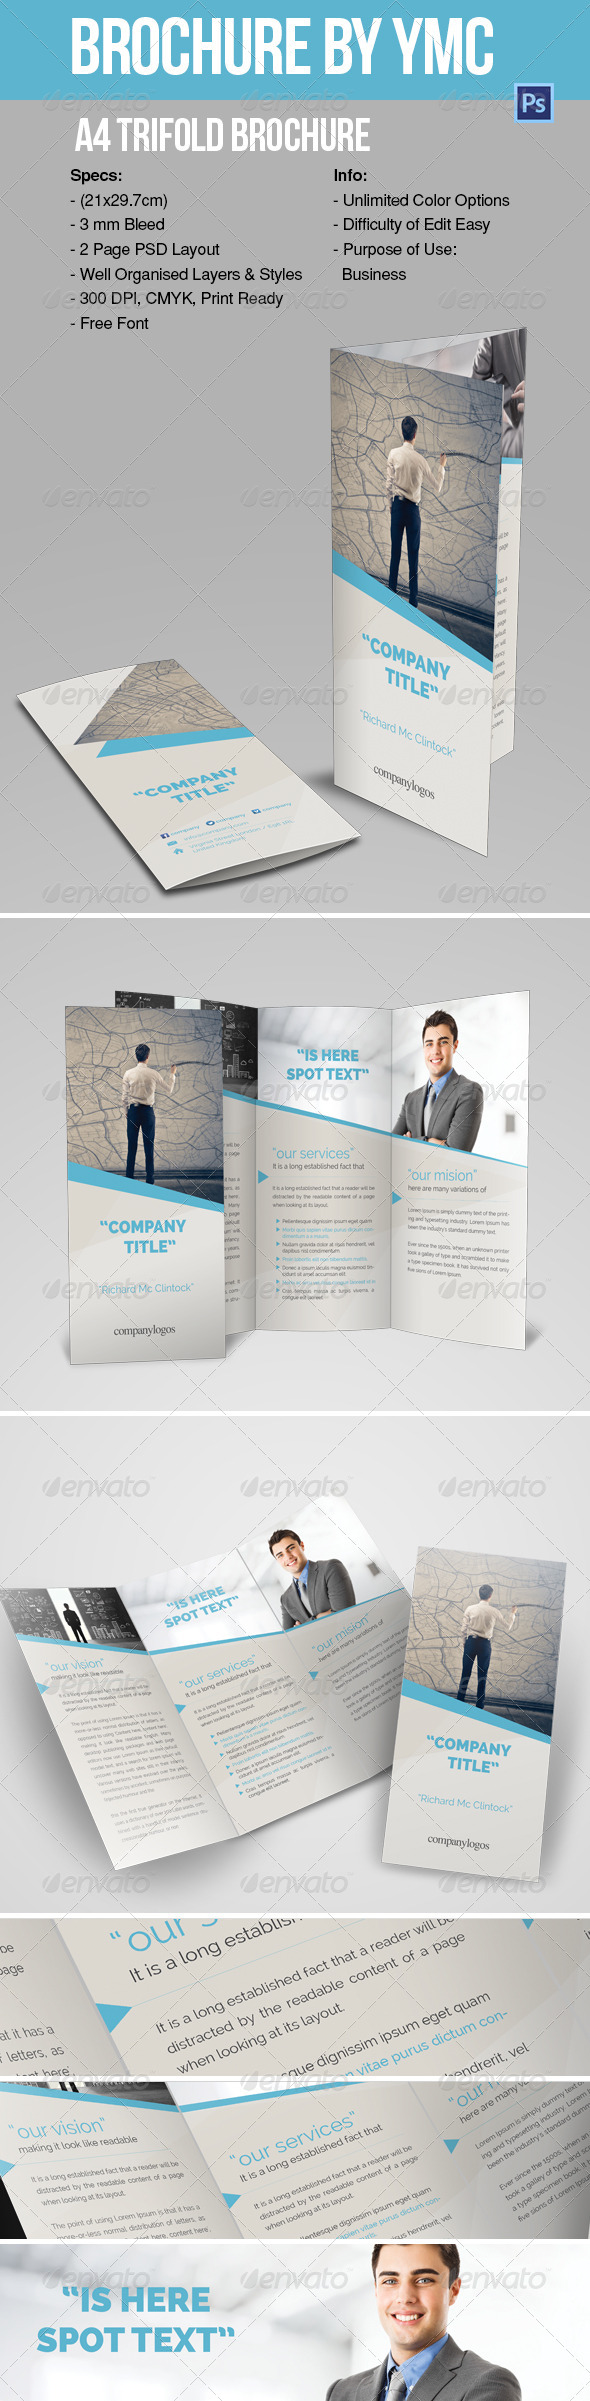 GraphicRiver A4 Trifold Brochure YMC Design 6796967